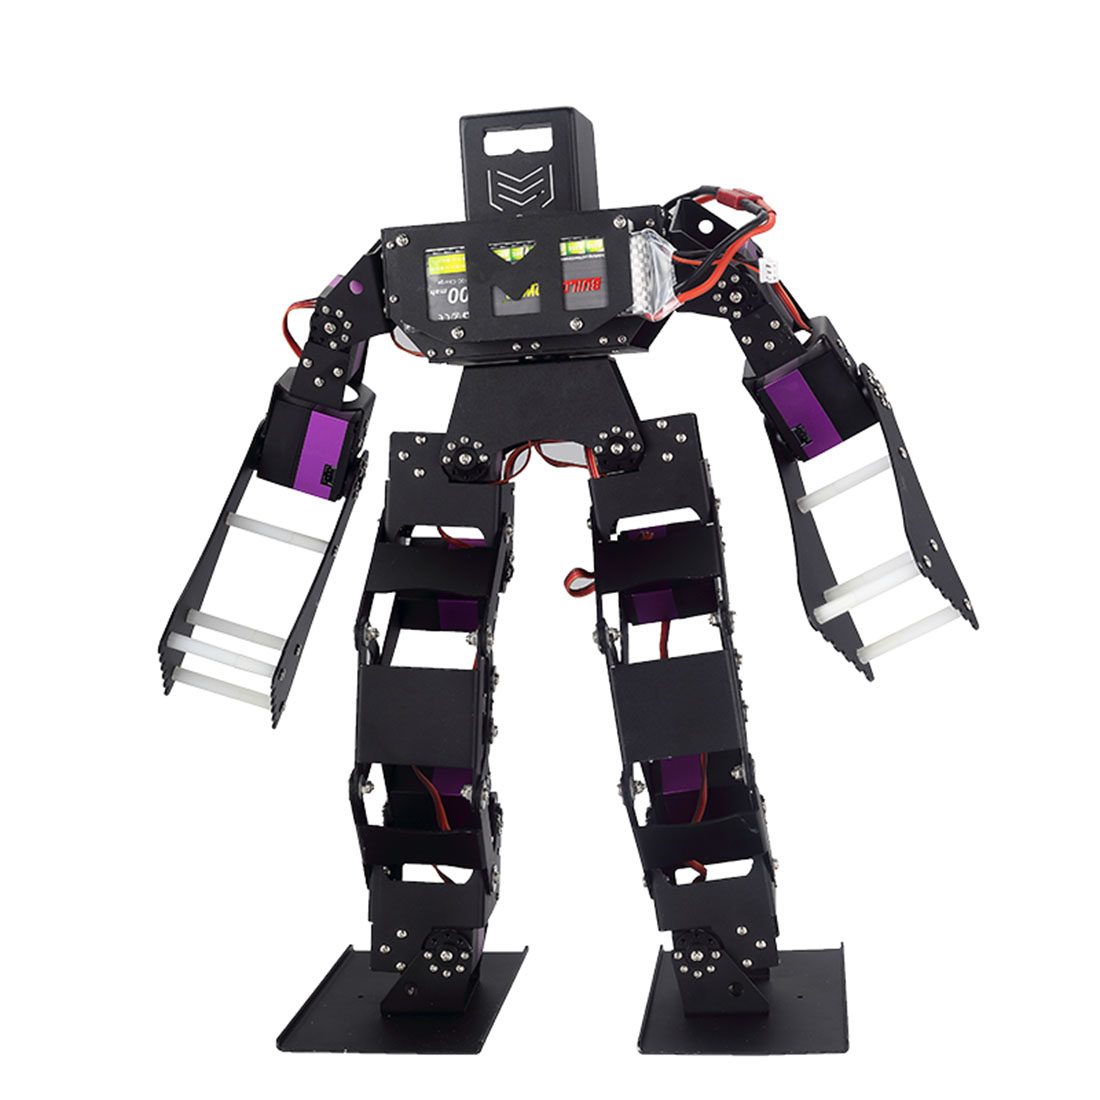 Programmable Biped Boxing Competition Robot Toy DIY Stem Robot Educational Kit Compatible With Arduino/Microbit /STM32 /51